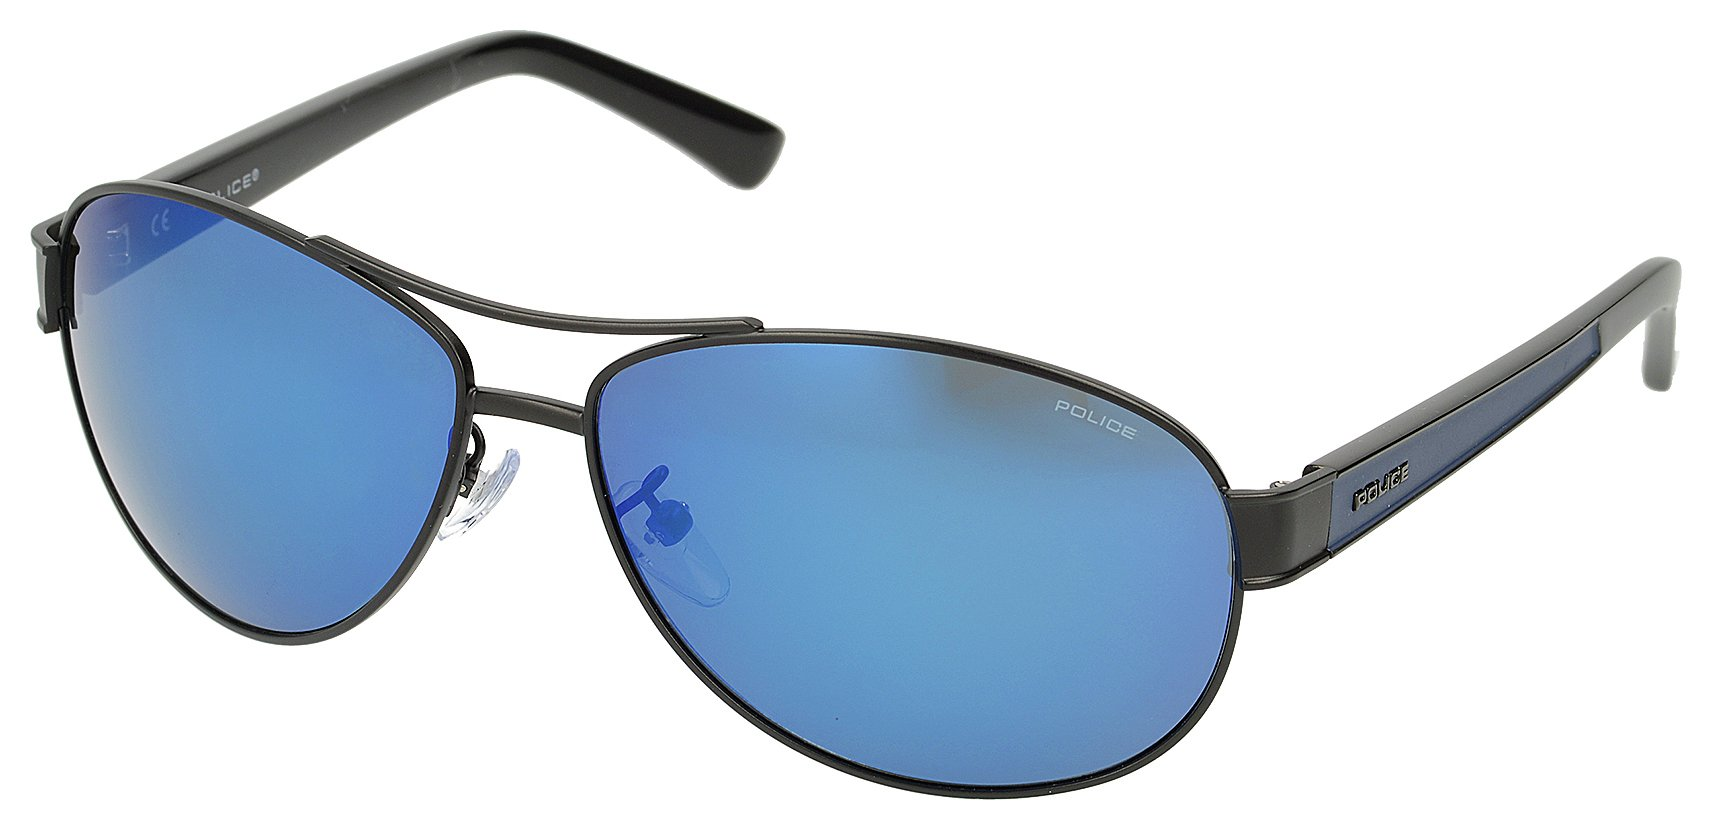 police-matt-black-oval-aviator-with-blue-mirror-lens